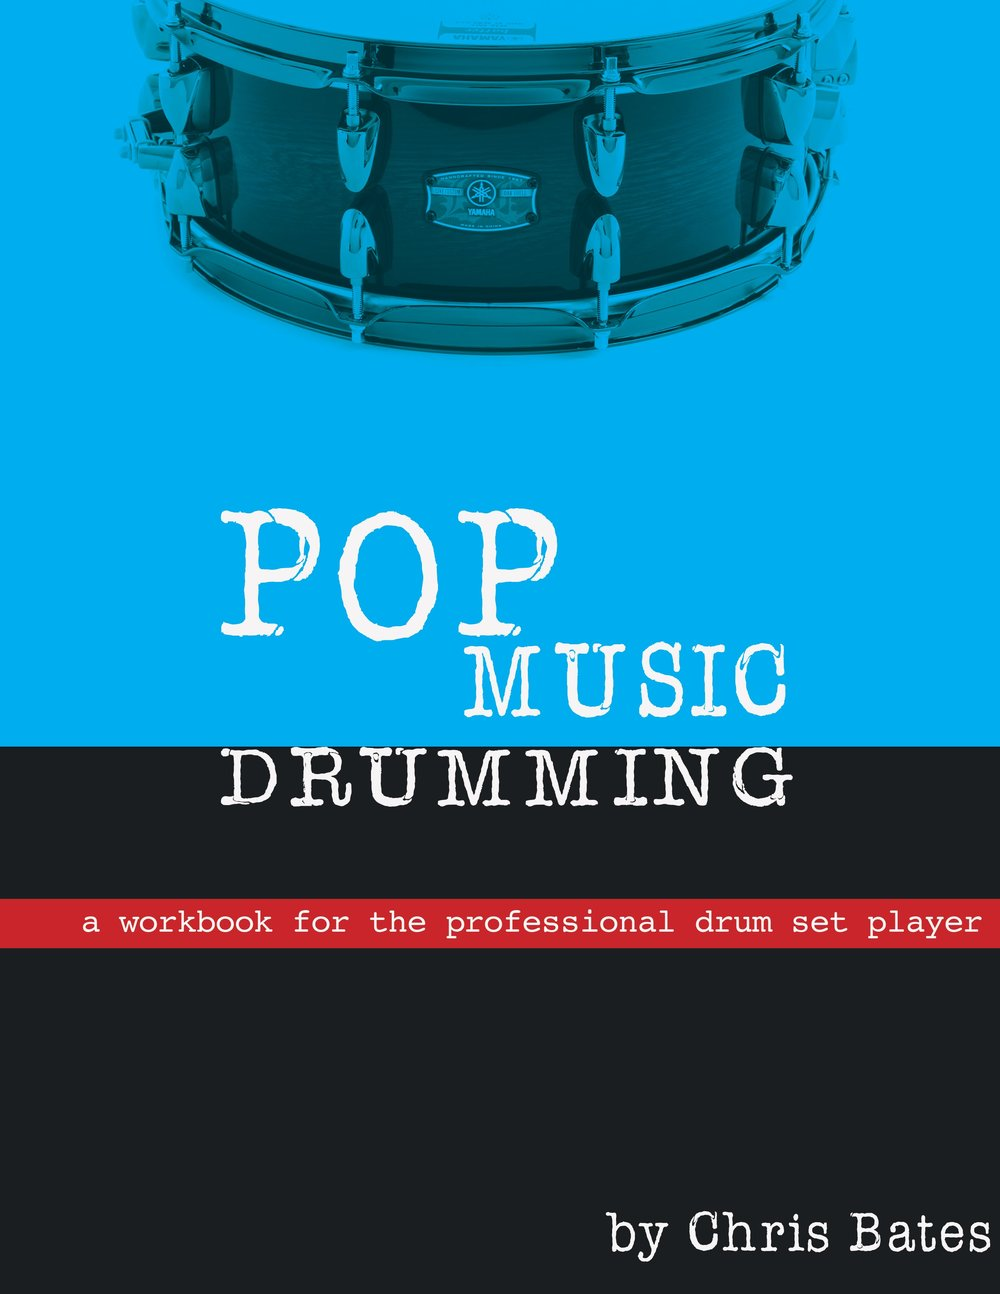 Pop Music Drumming